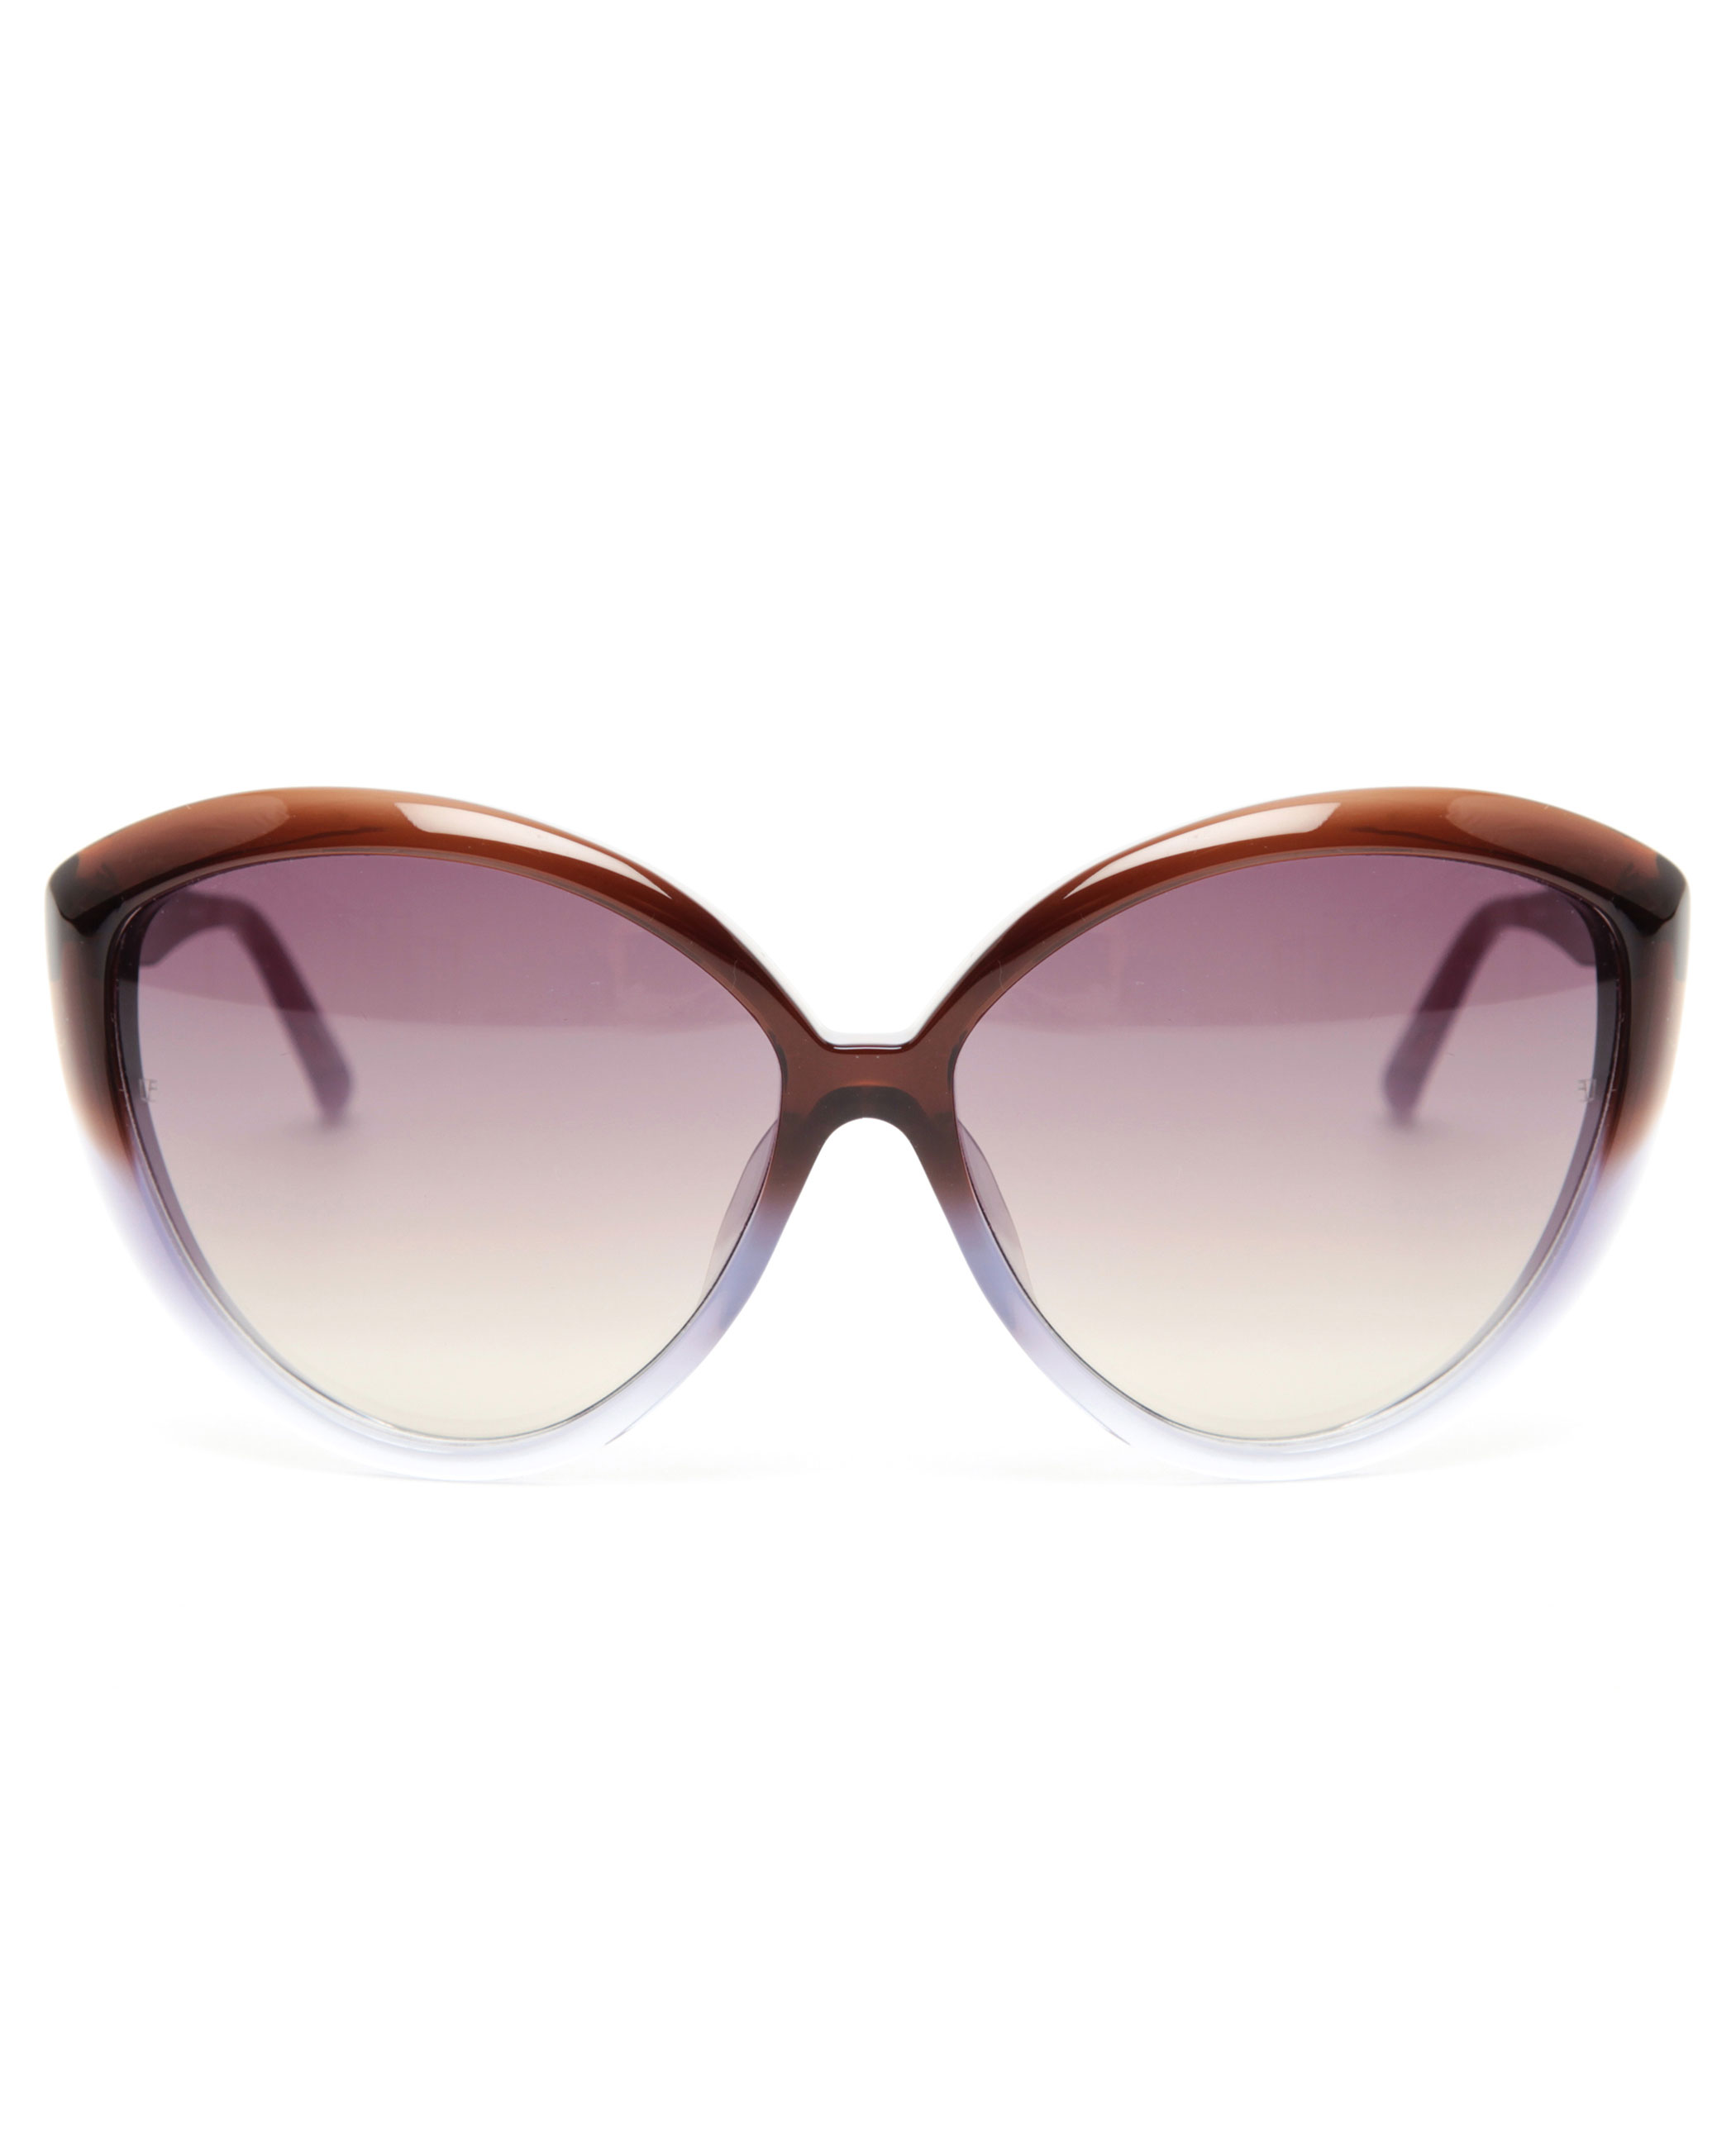 e68bc5bbd844 Lyst - Linda Farrow Oversized Cat-eye Acetate Sunglasses in Brown